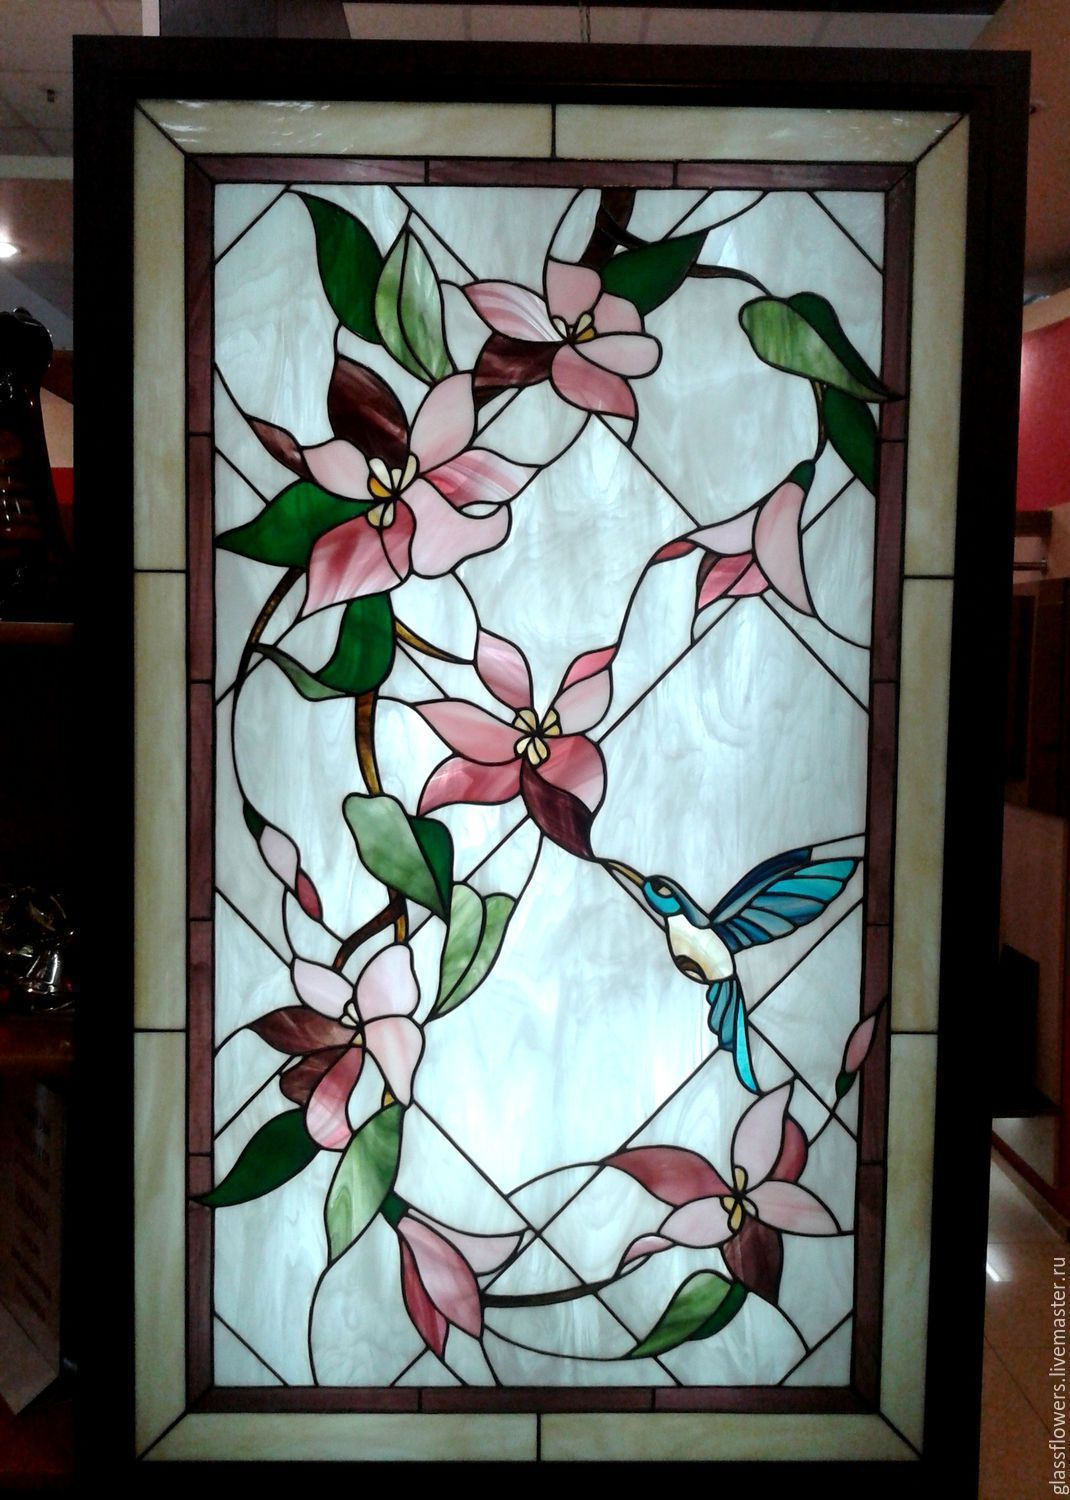 Stained Glass Hummingbird. Film stained glass in a niche with lighting, Stained glass, St. Petersburg, Фото №1